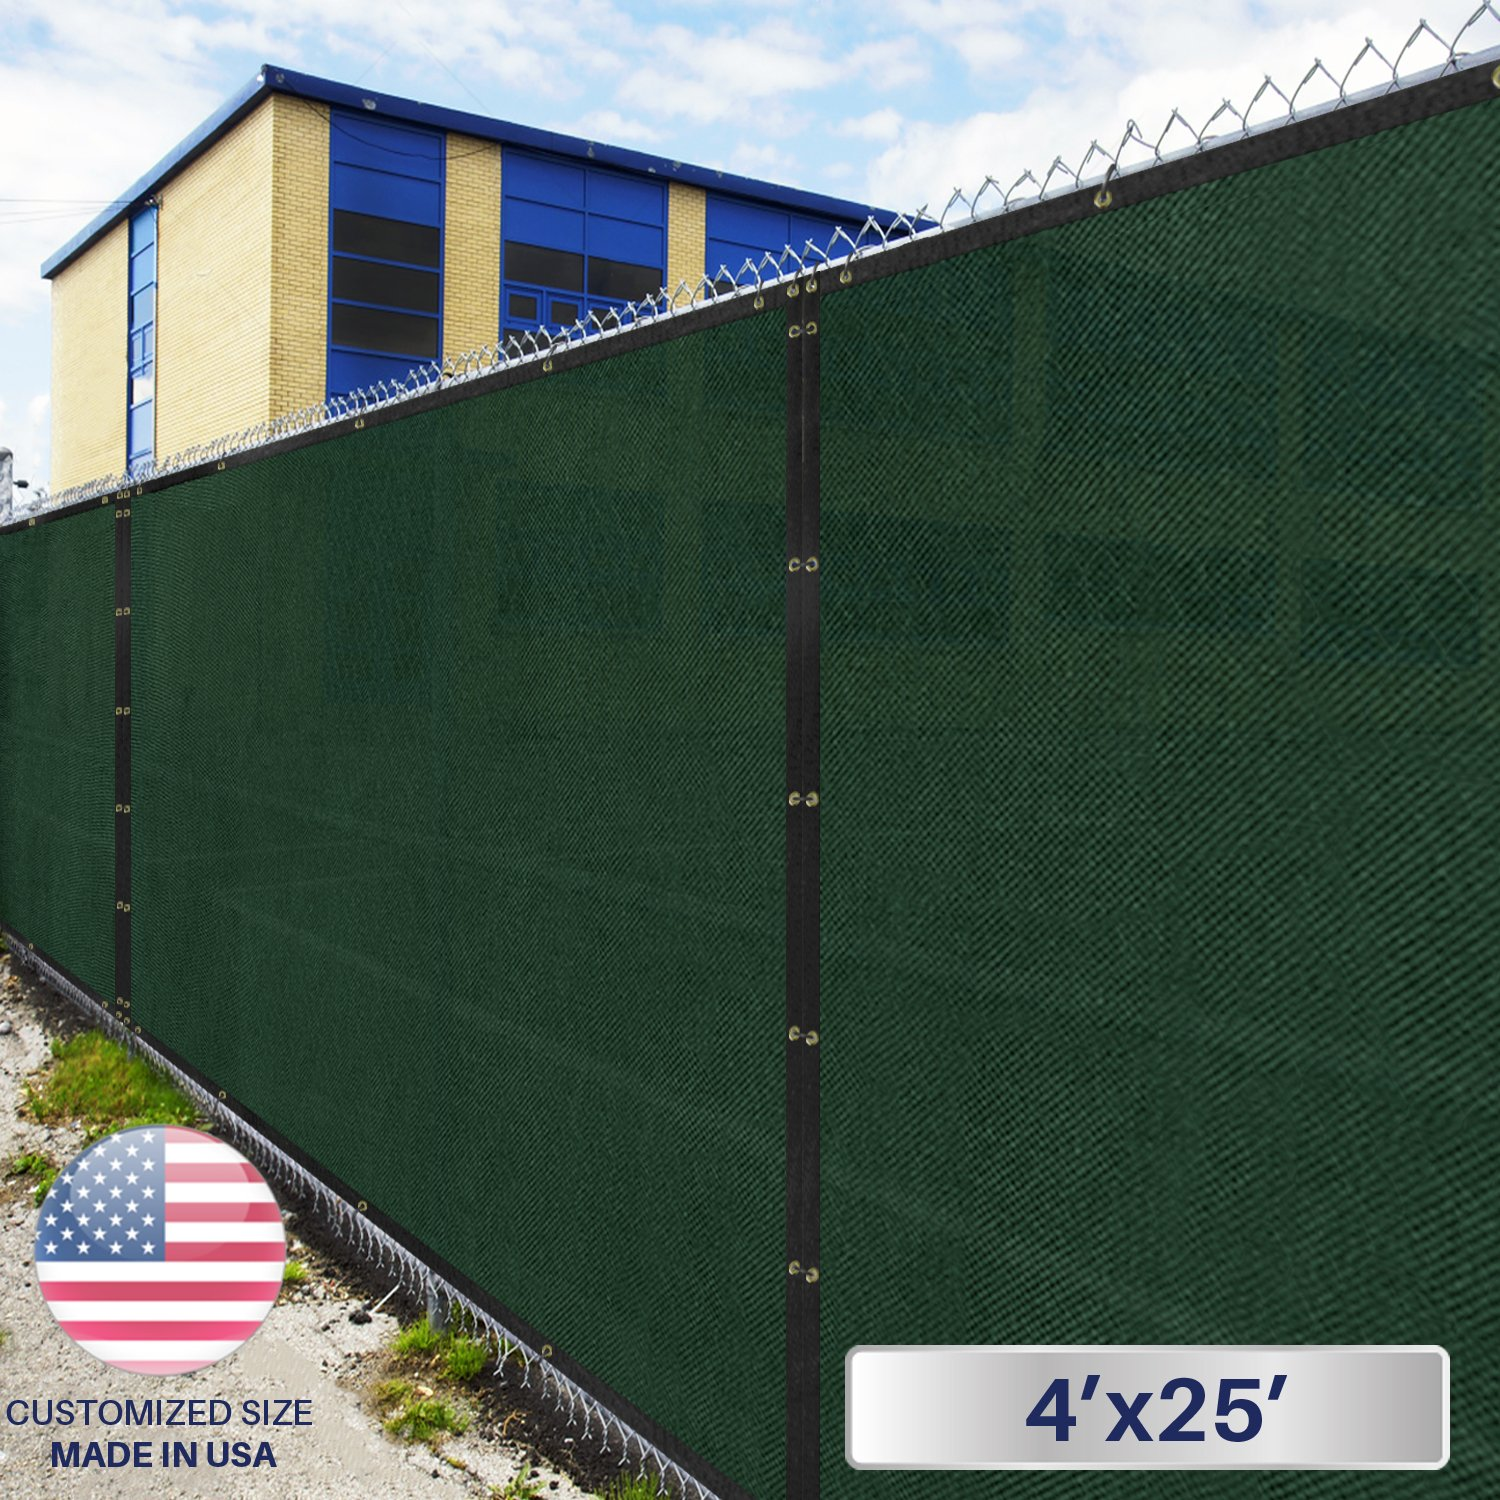 4' x 25' Privacy Fence Screen in Green with Brass Grommet 85% Blockage Windscreen Outdoor Mesh Fencing Cover Netting 150GSM Fabric - Custom